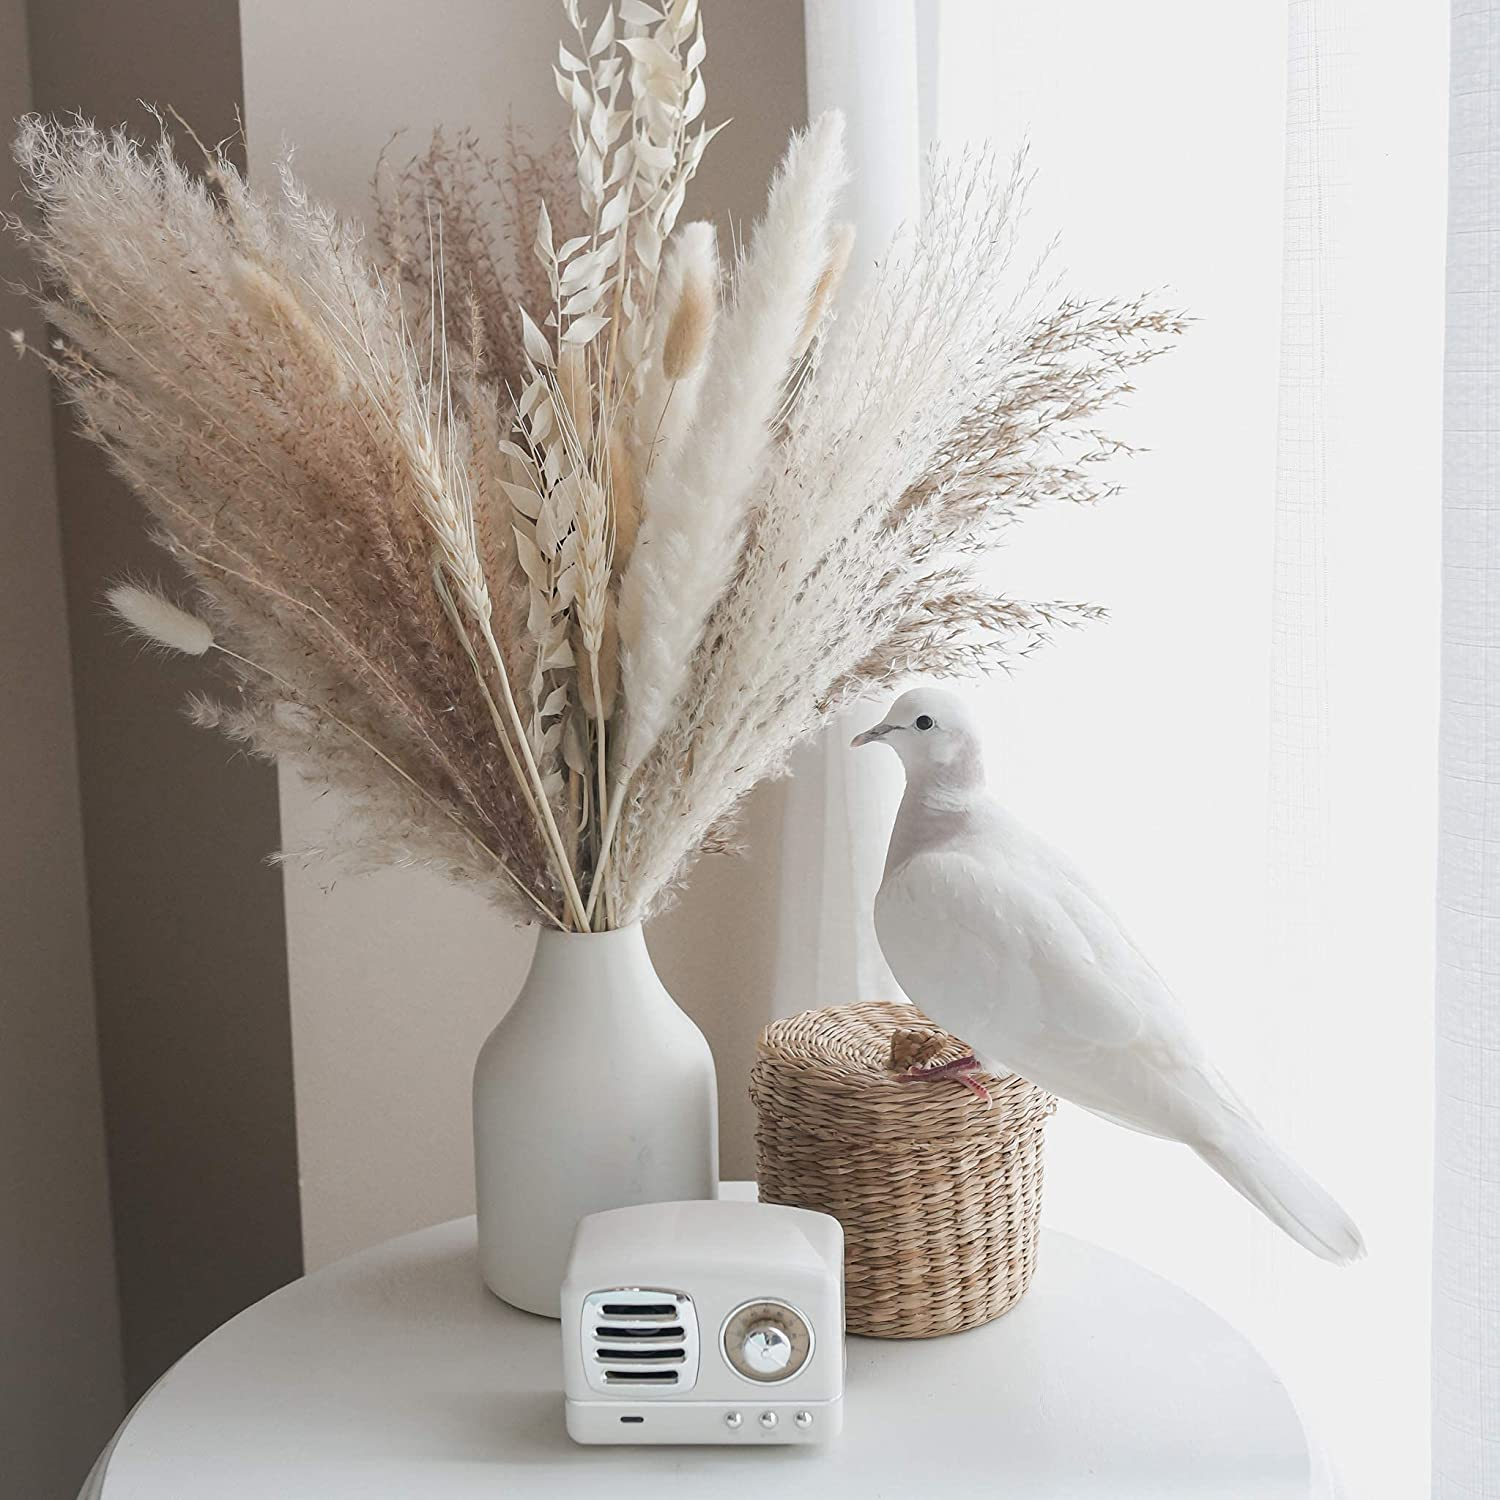 Calliope Creations - Dried Pampas Grass | Premium Dried Bouquet with Naturally Dried Pampas | Long-Lasting Dried Flowers Bouquet for Boho Home Decor and Boho Wedding Decor – 30 Stems (White and Beige)